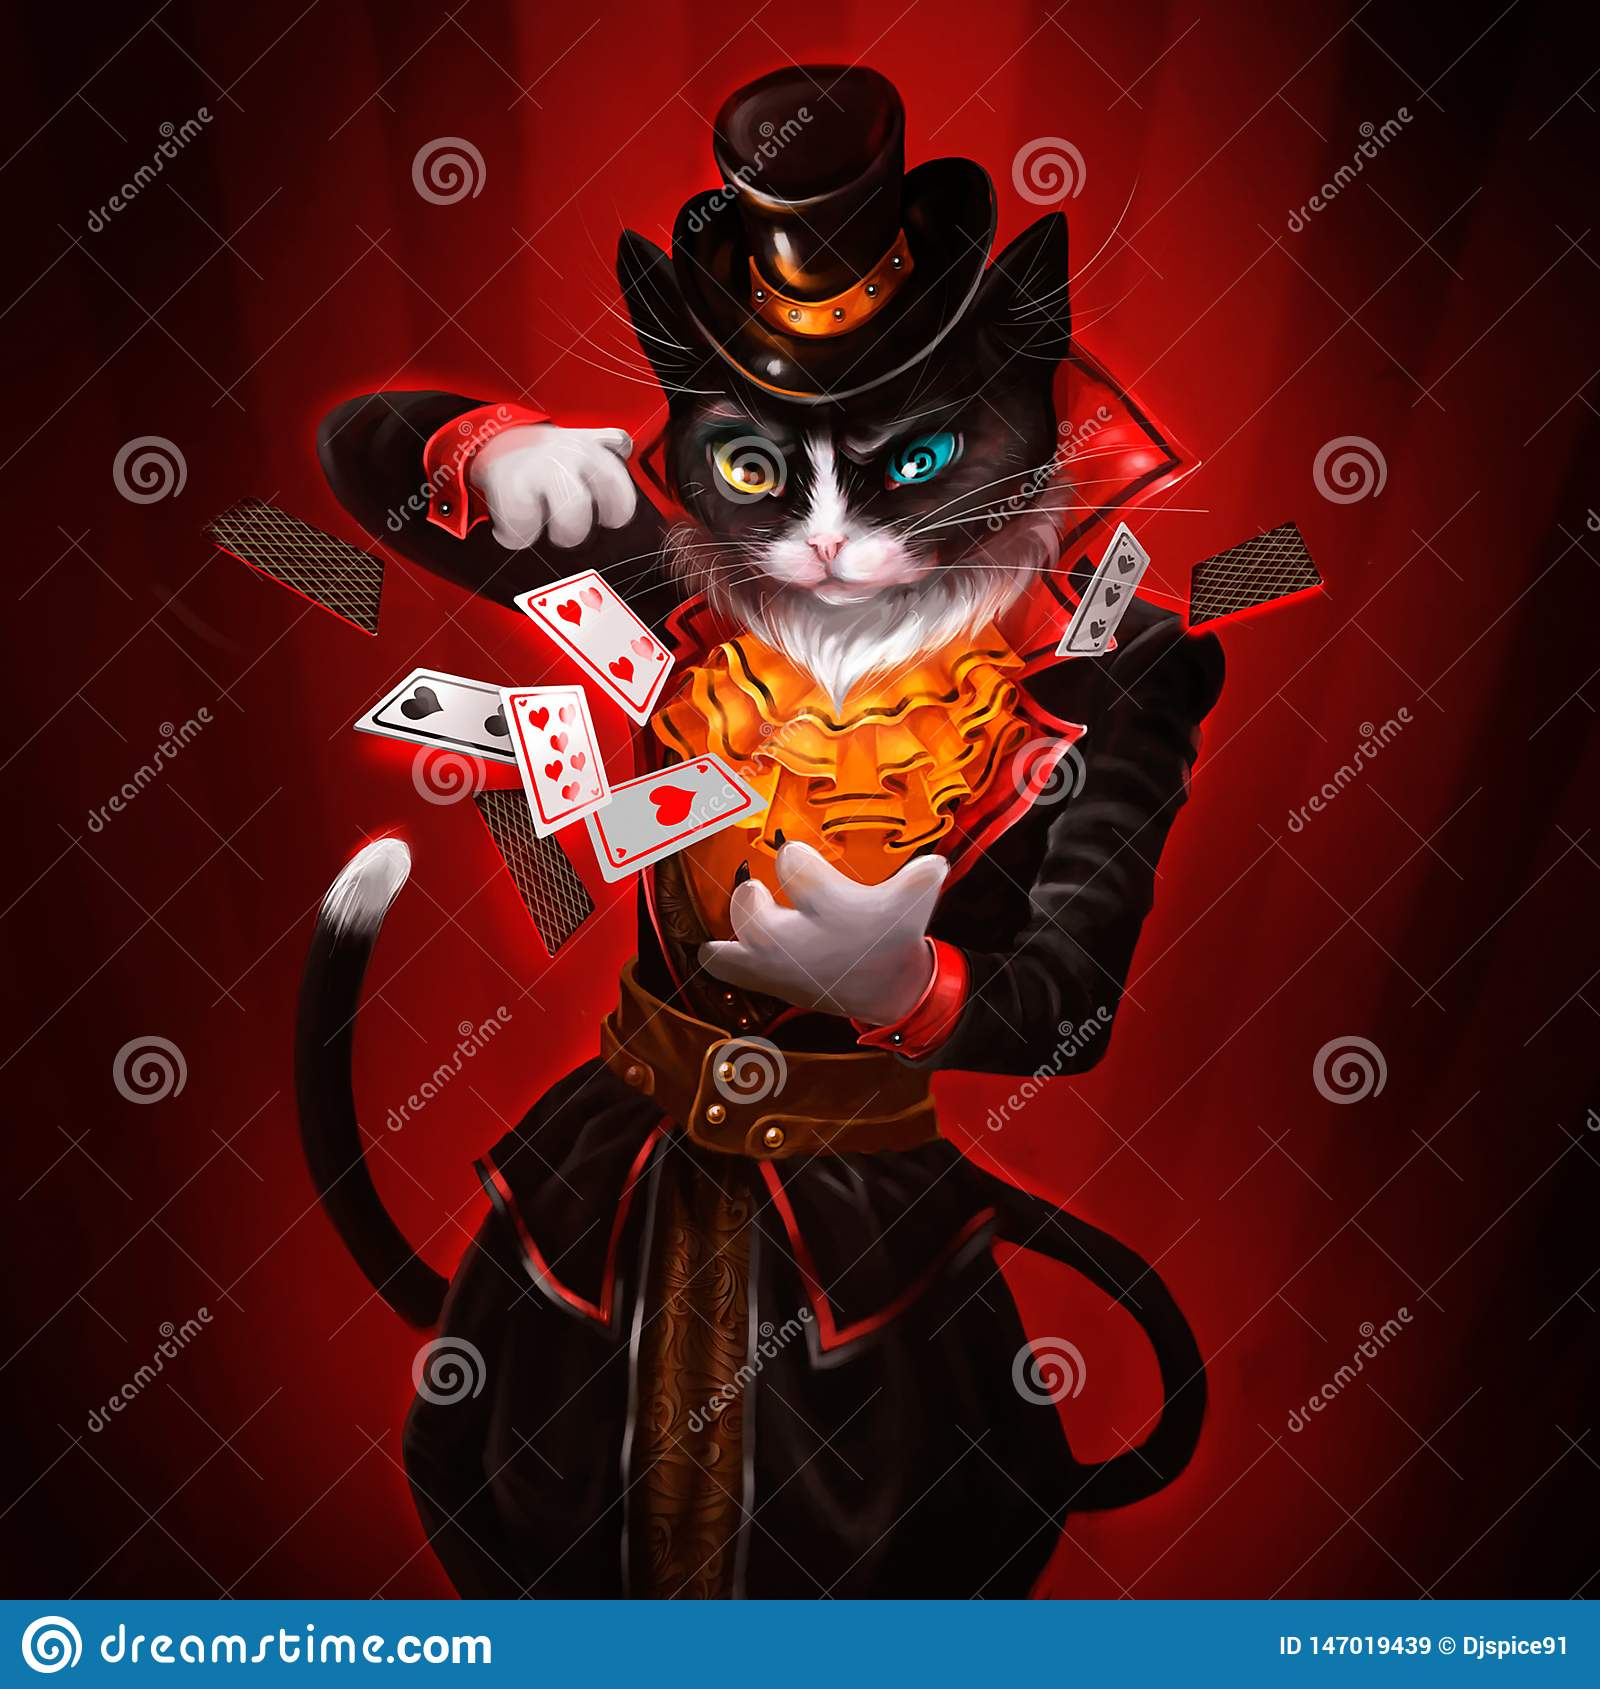 Illustration of a cat with playing cards